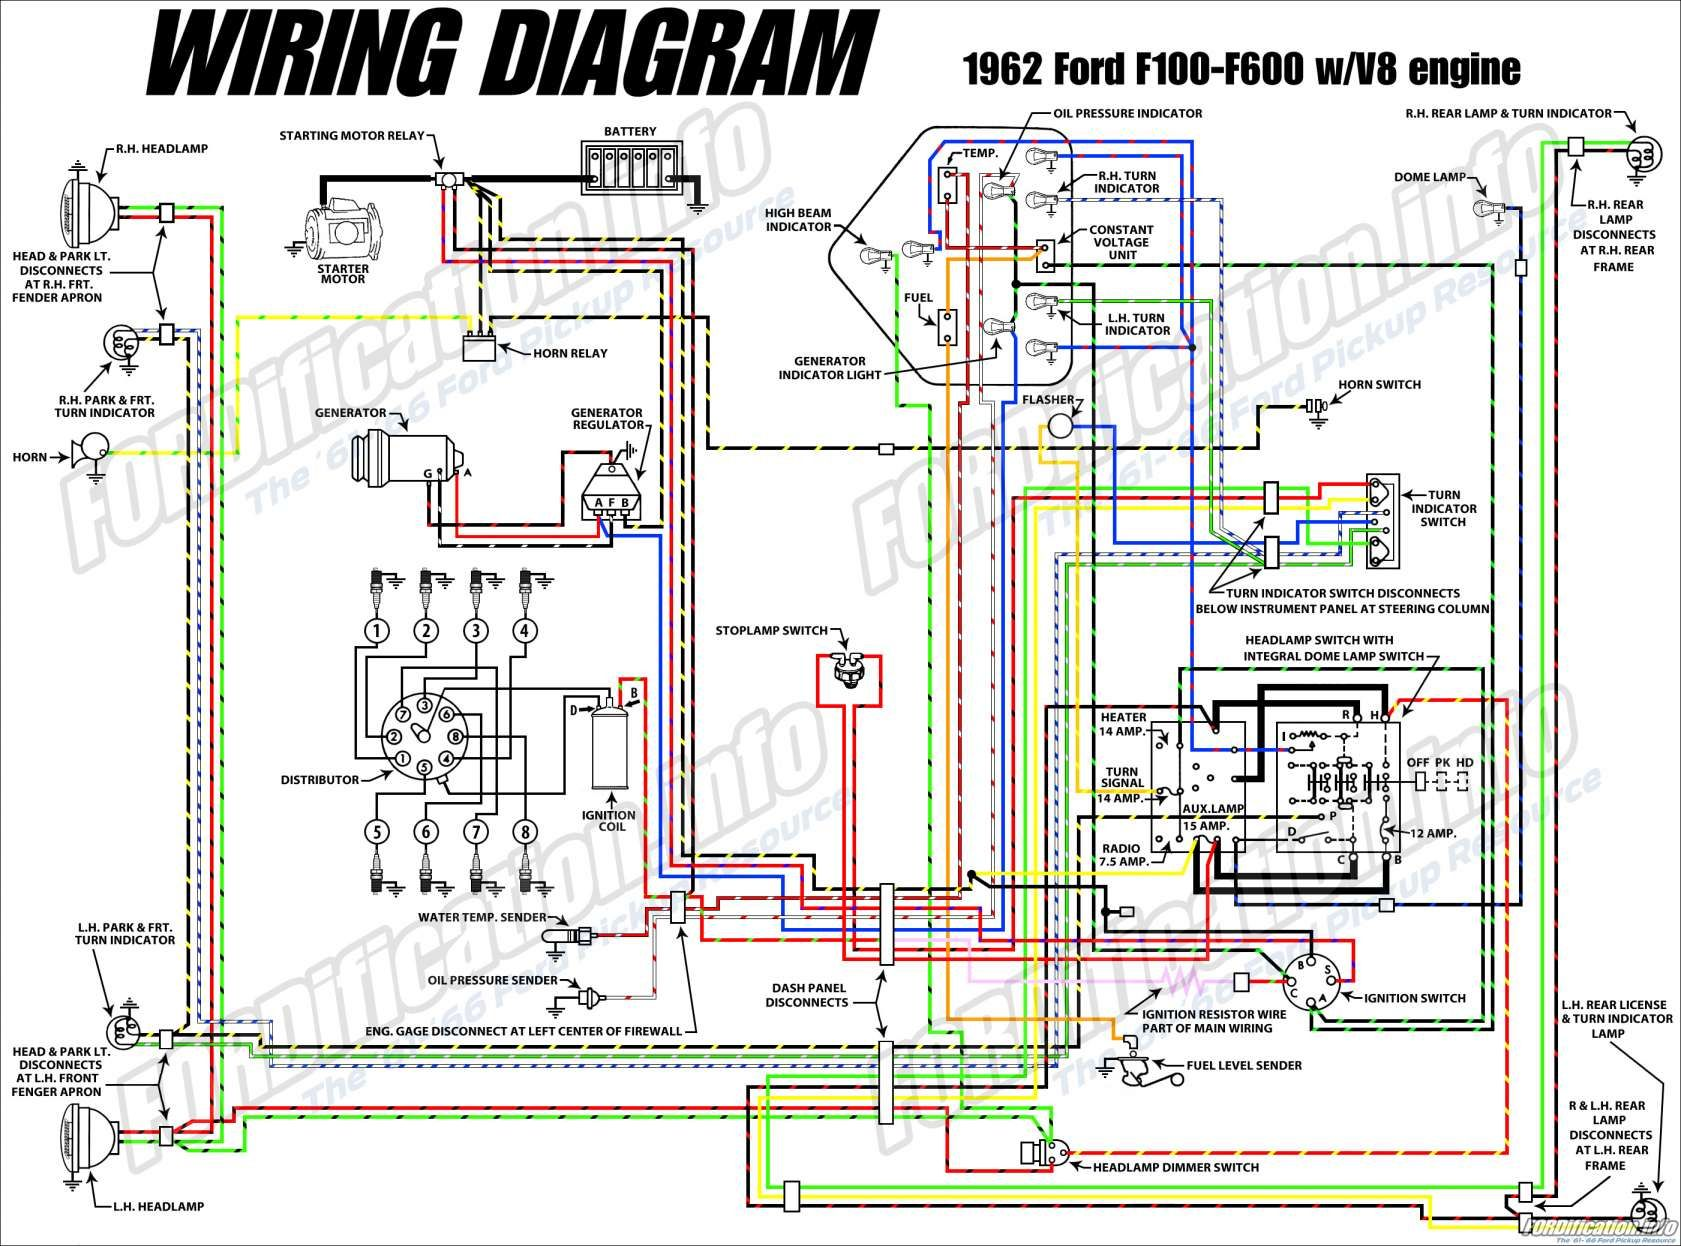 15 1959 Ford Truck Wiring Diagram Truck Diagram Wiringg Net Diagram Ford Truck Electrical Diagram